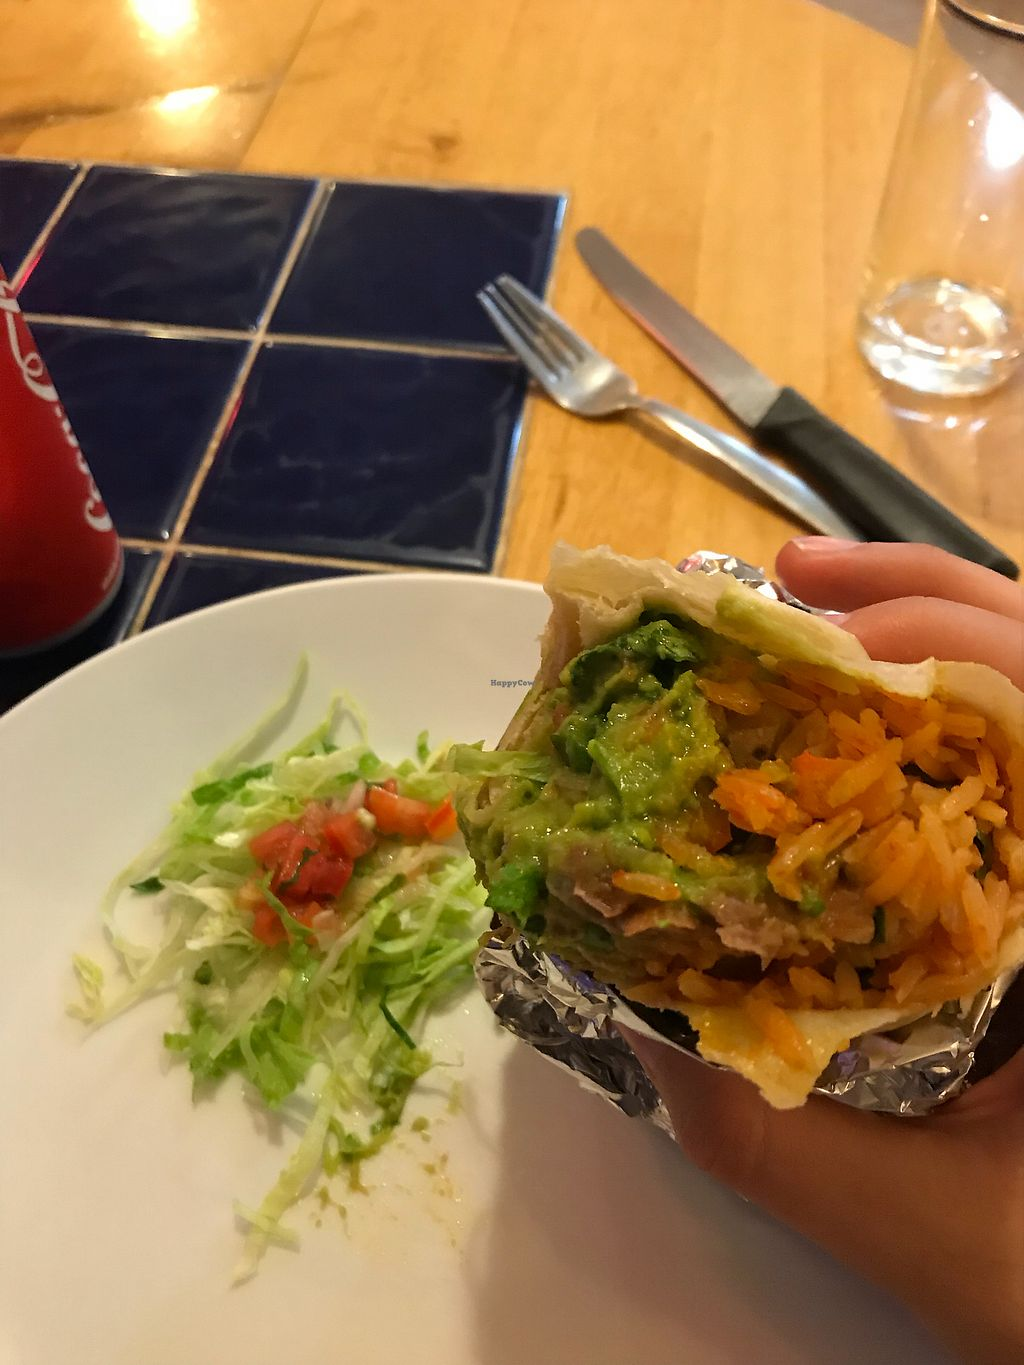 """Photo of Sunrise Tacos  by <a href=""""/members/profile/TravelVeggie"""">TravelVeggie</a> <br/>Vegan burrito  <br/> December 30, 2017  - <a href='/contact/abuse/image/108173/340778'>Report</a>"""